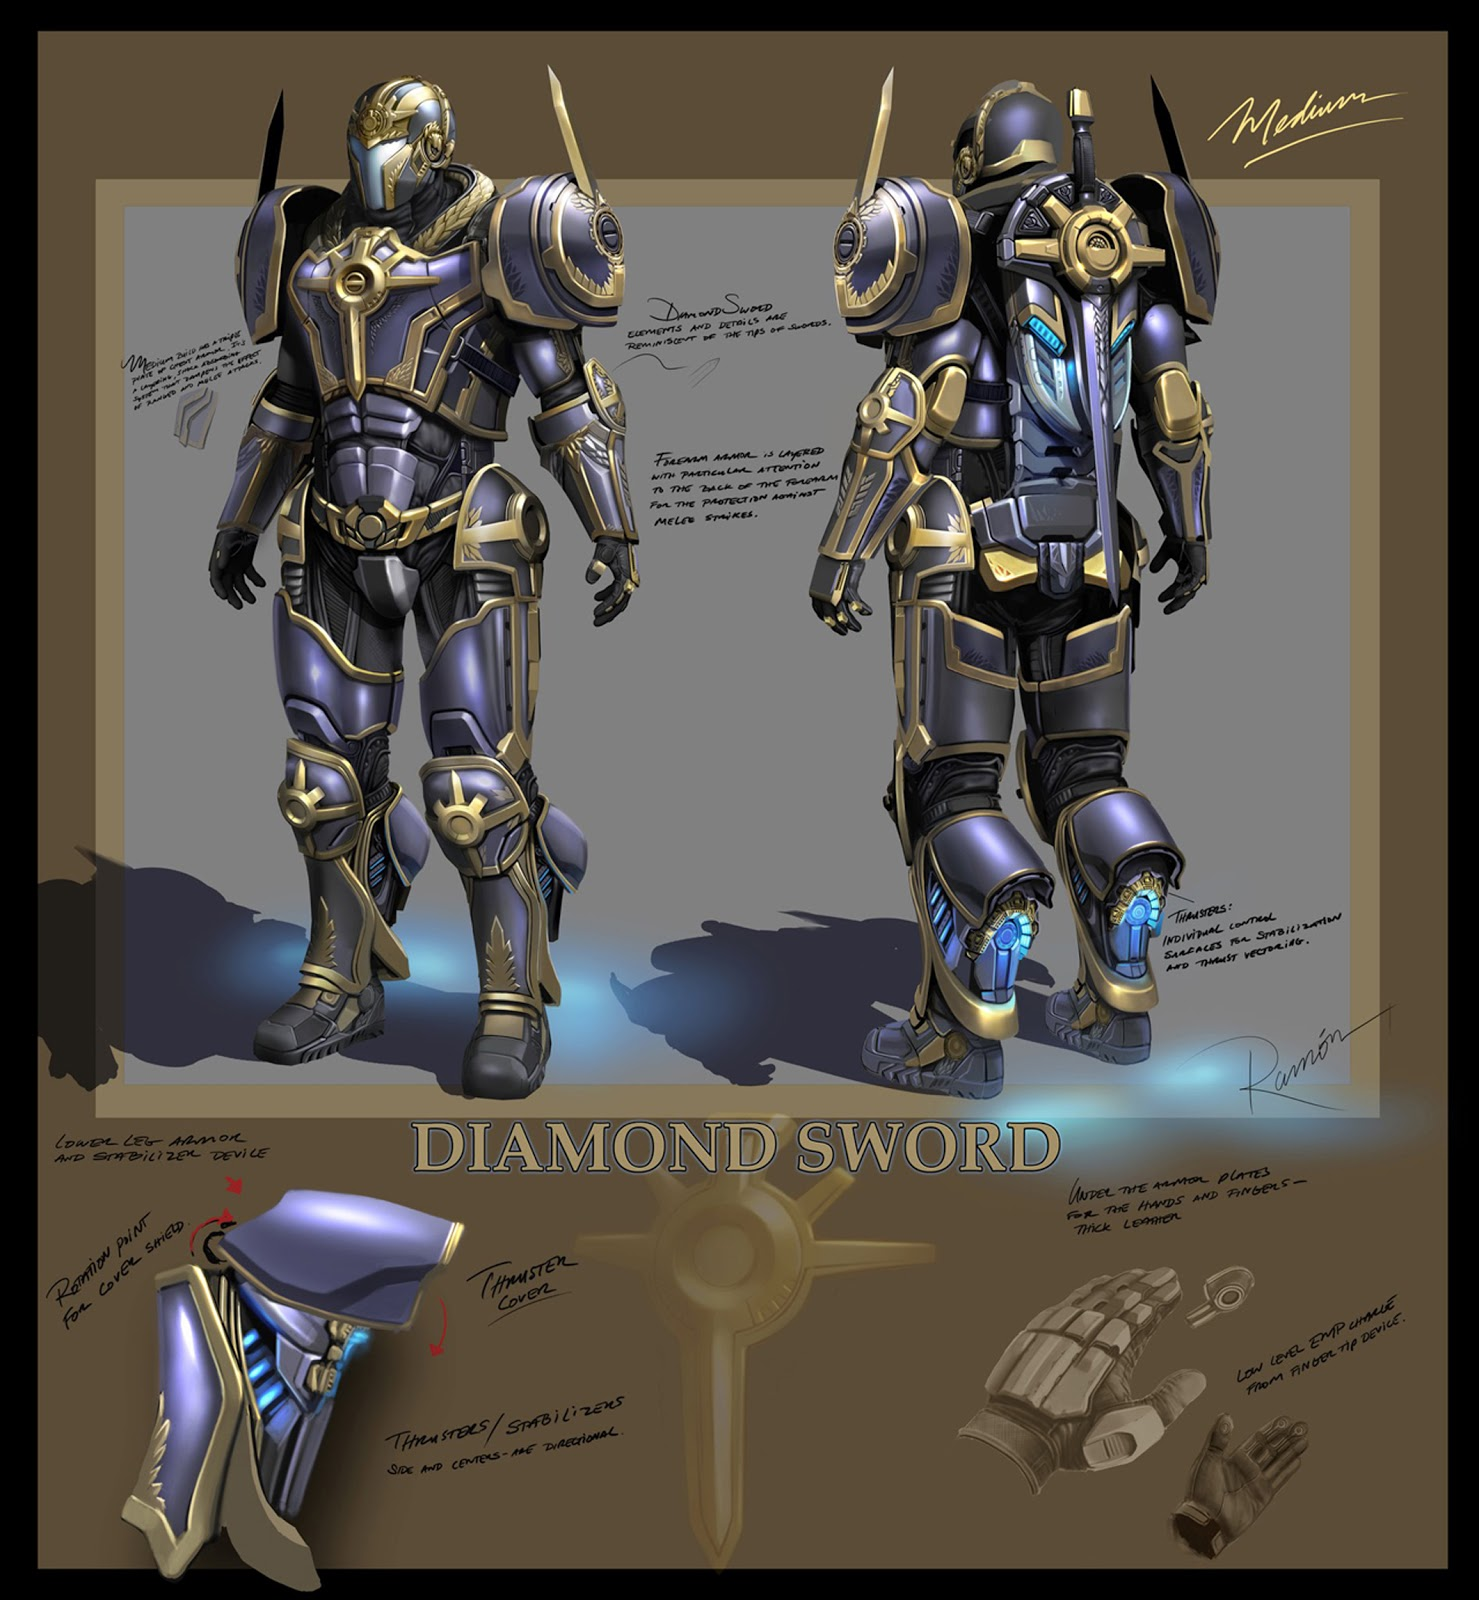 http://2.bp.blogspot.com/-oQ4IME5WyjY/UJNvRVWZTSI/AAAAAAAAHQo/_zJBLHLsGm8/s1600/tribes+ascend+medium+INFANRTY+exo+suit+space+diamond+sword+armor+halo+4+sci+fi+soldier+concept+design+cyborg+costume+3d+4.jpg